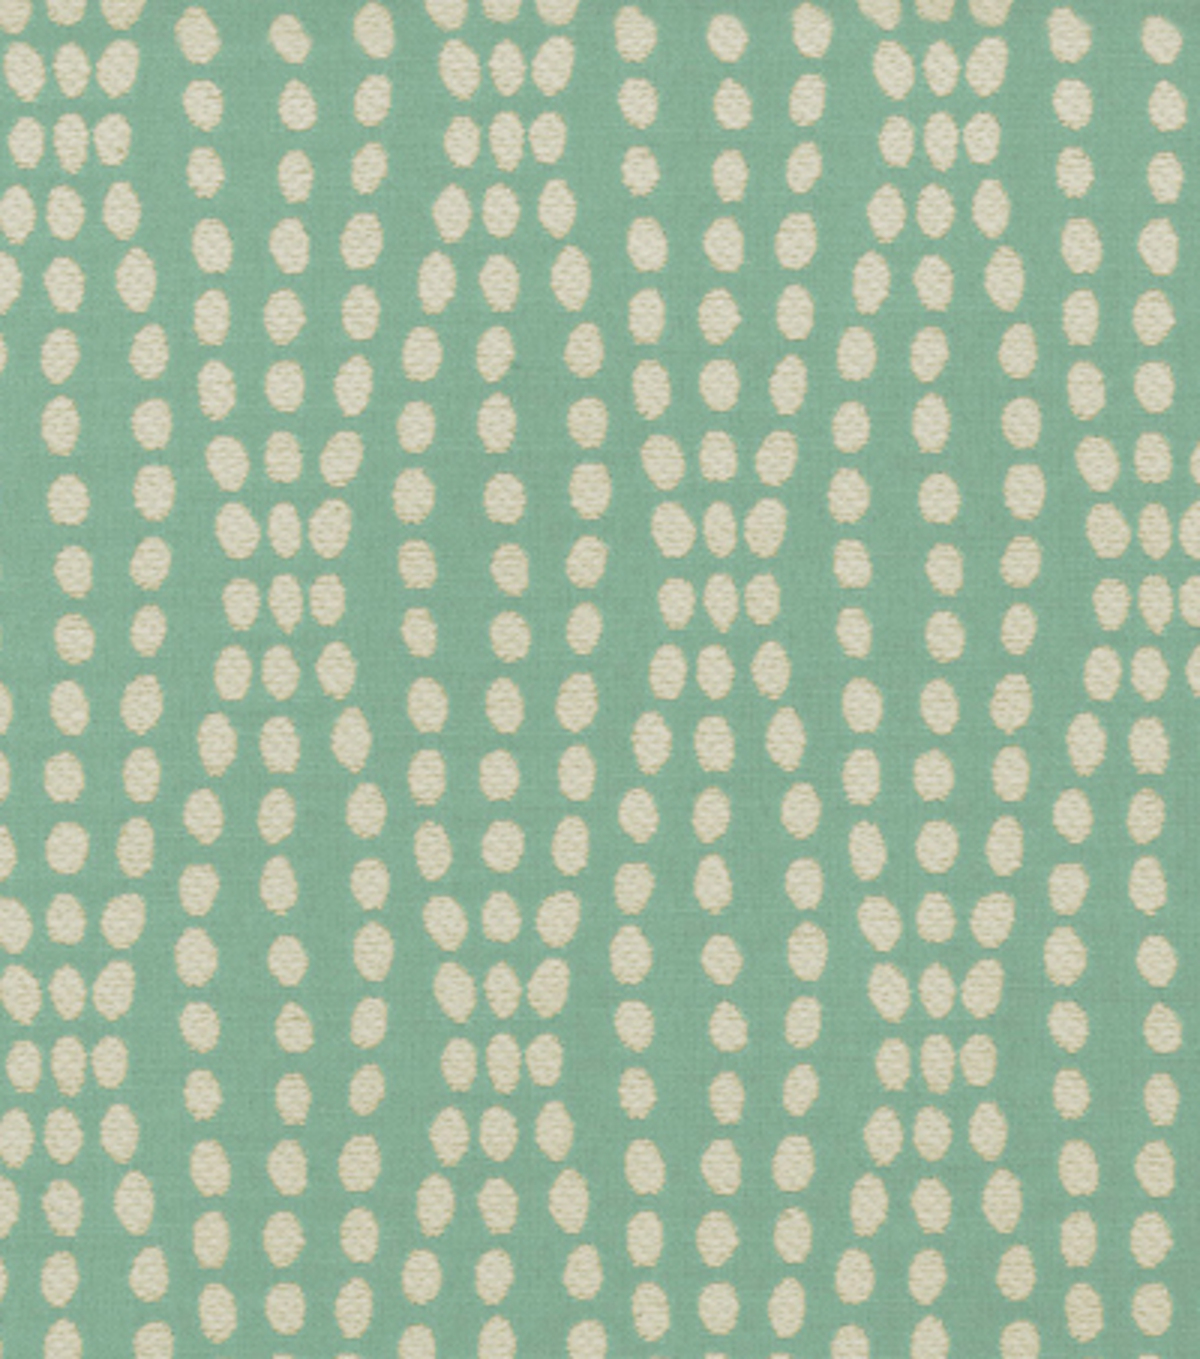 Home Decor 8\u0022x8\u0022 Fabric Swatch-Upholstery Fabric-Waverly Strands/Turquoise